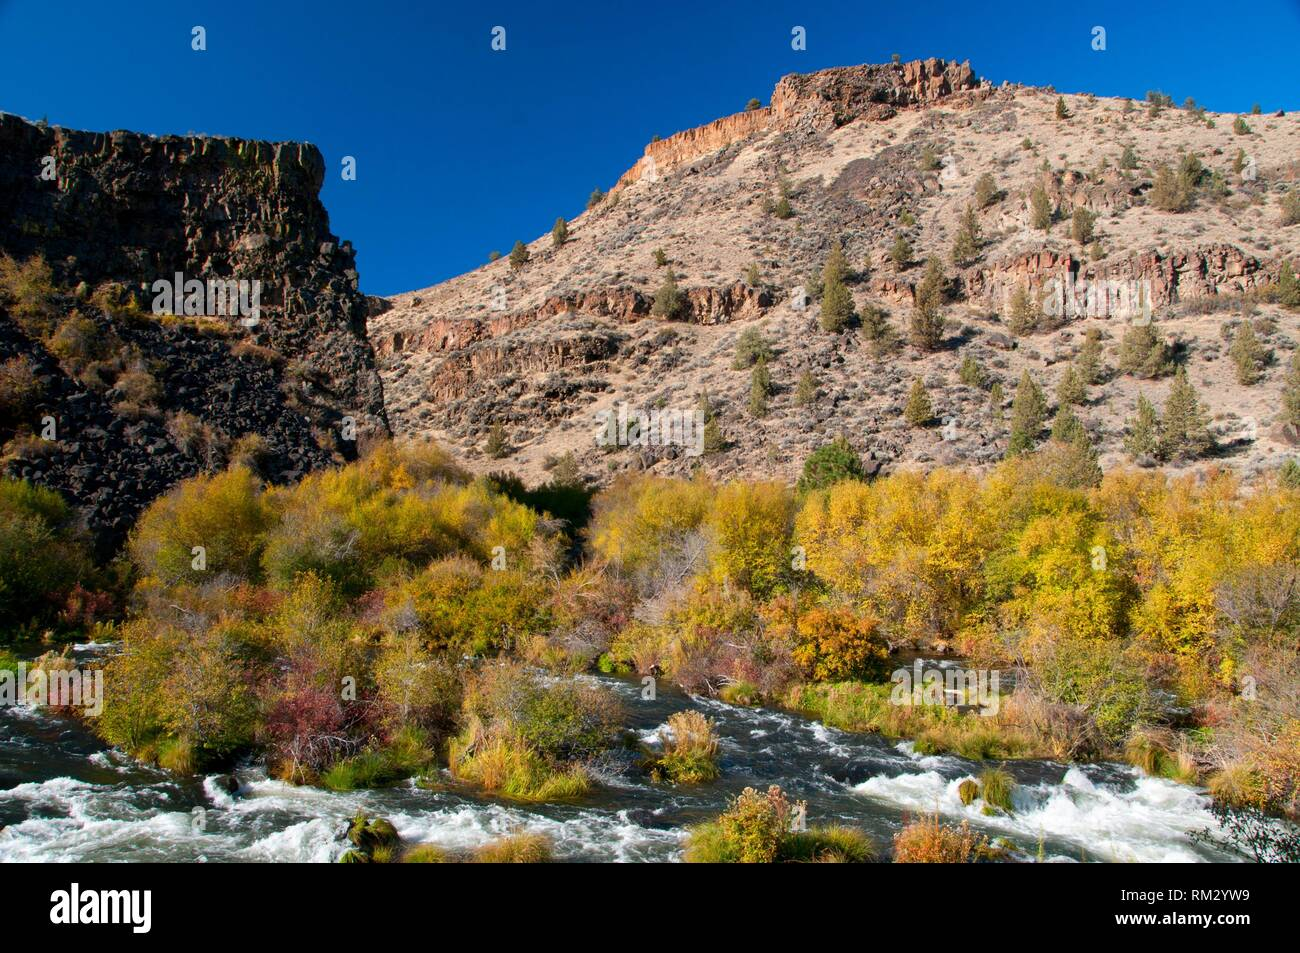 Deschutes Wild and Scenic River from Scout Camp Trail, Steelhead Falls Wilderness Study Area, Prineville District Bureau of Land Management, Oregon. - Stock Image